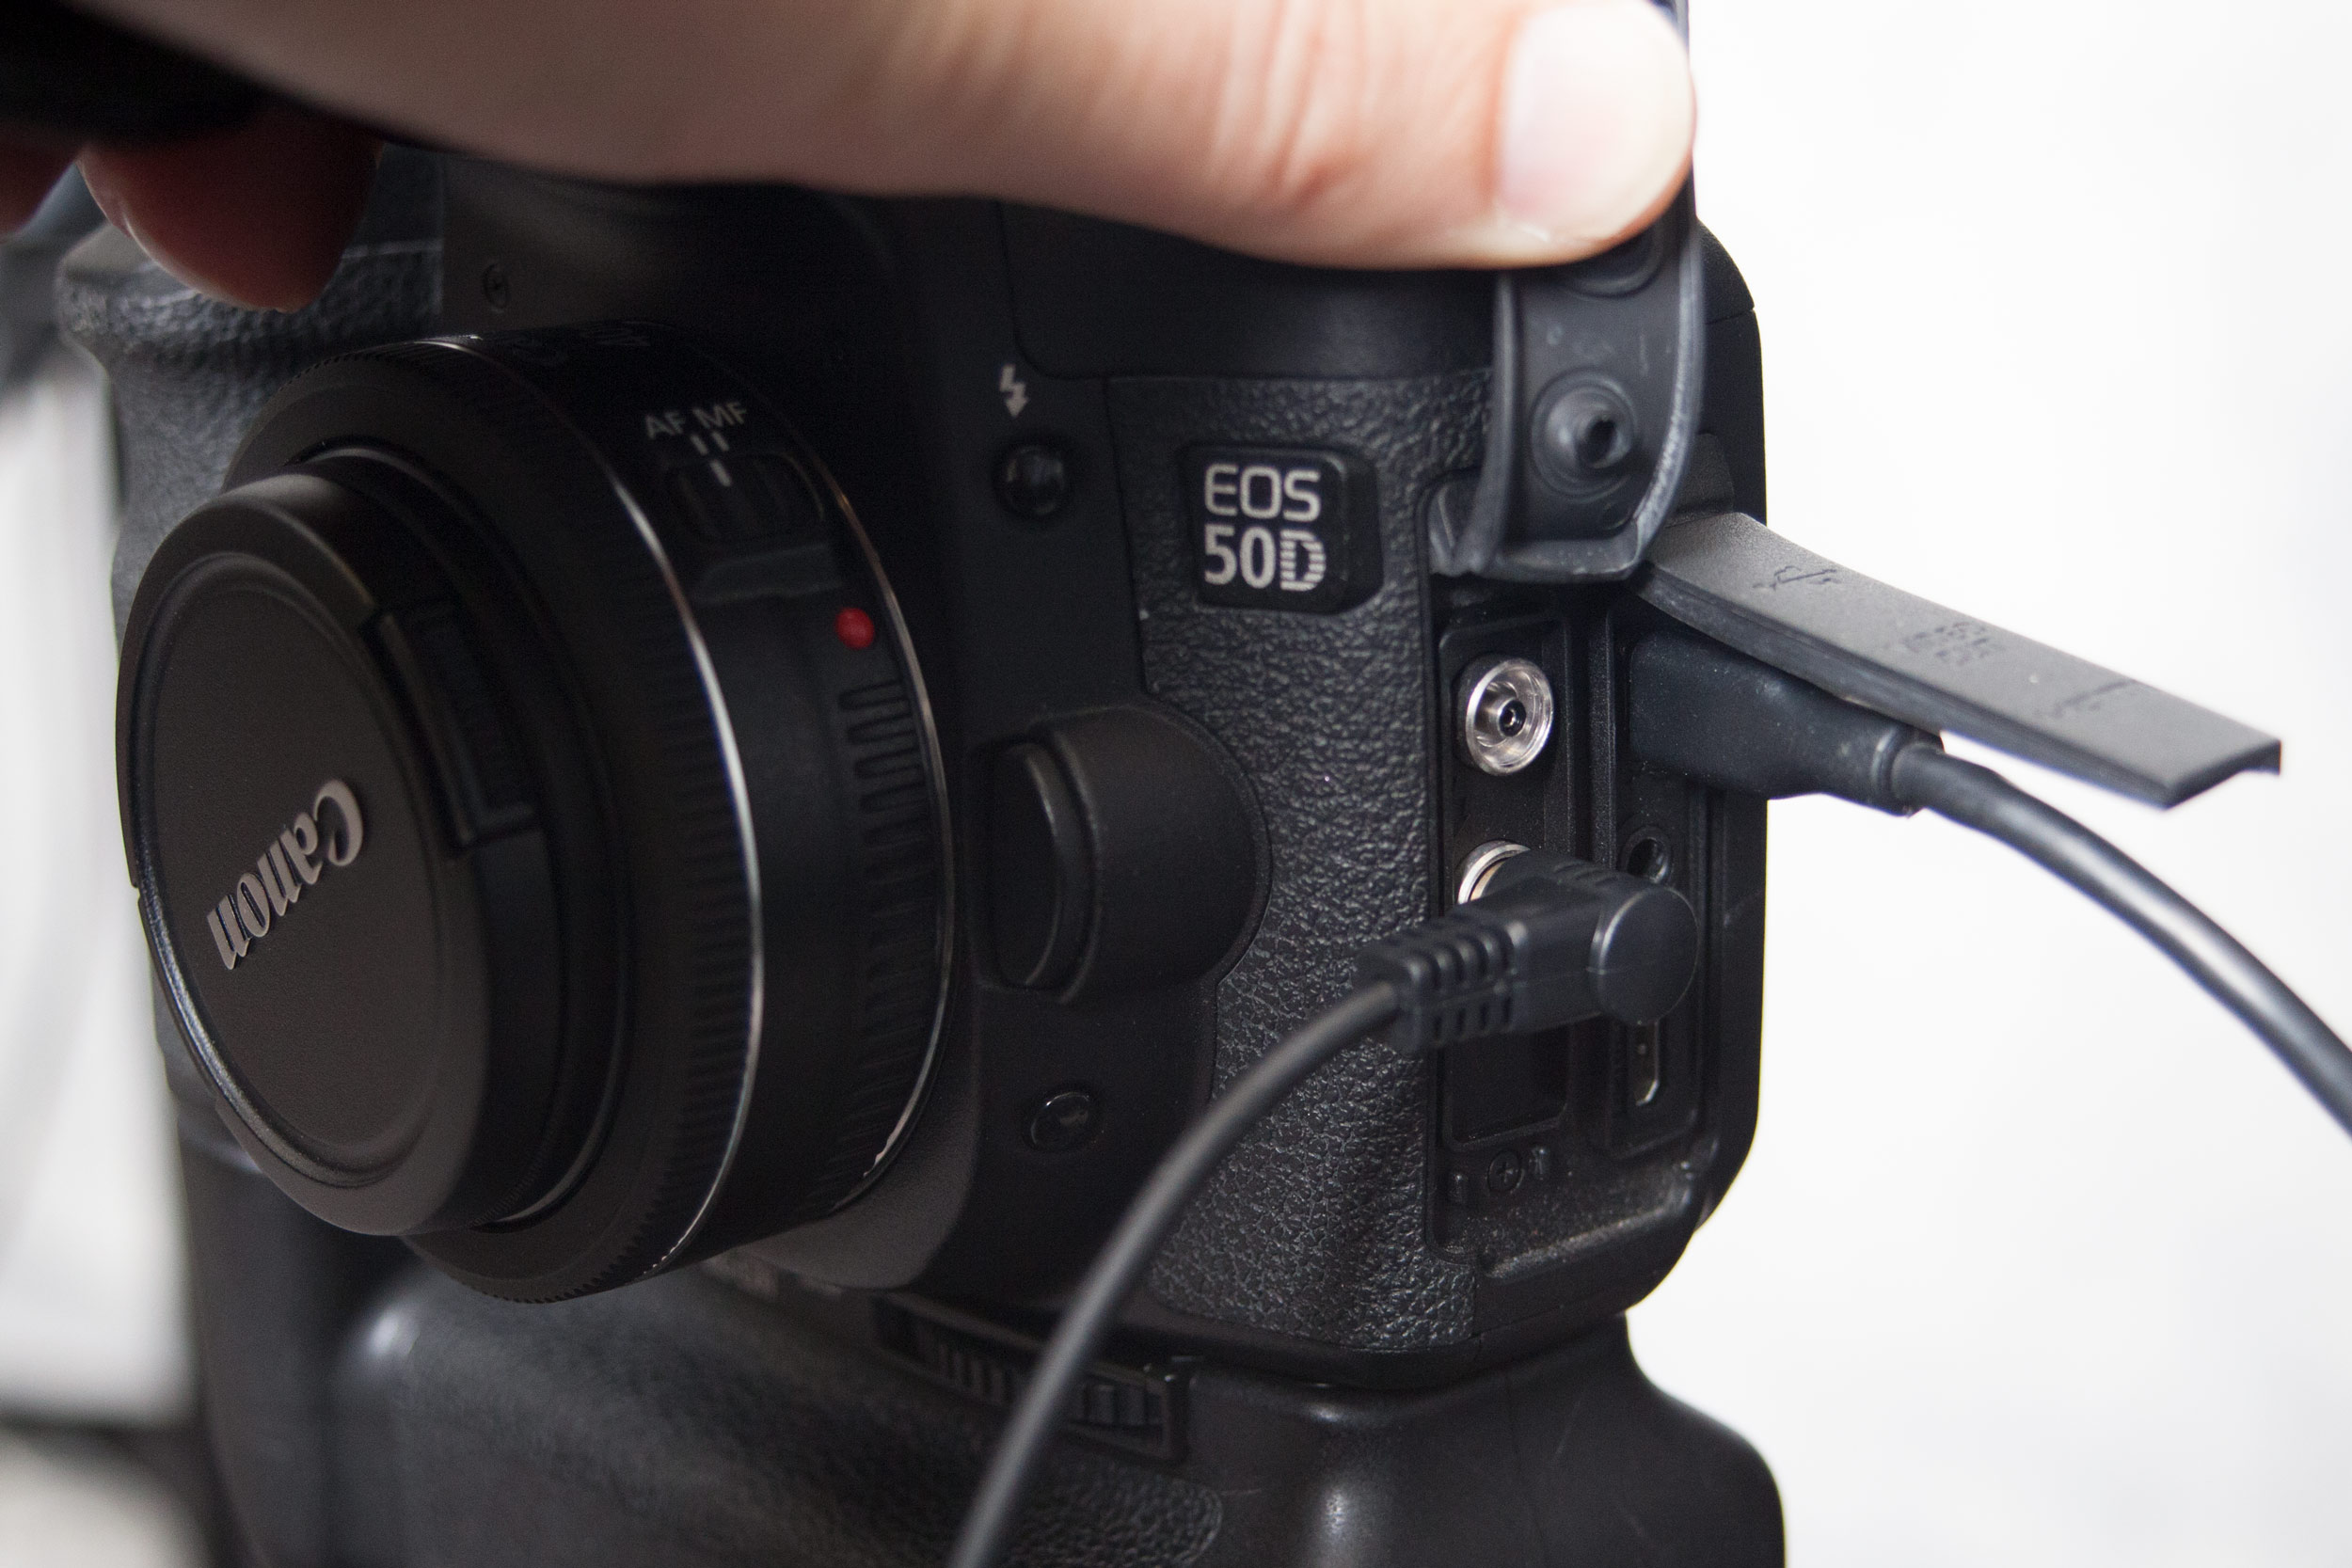 Setting Up a Photo Booth using an SLR and Free Tethering